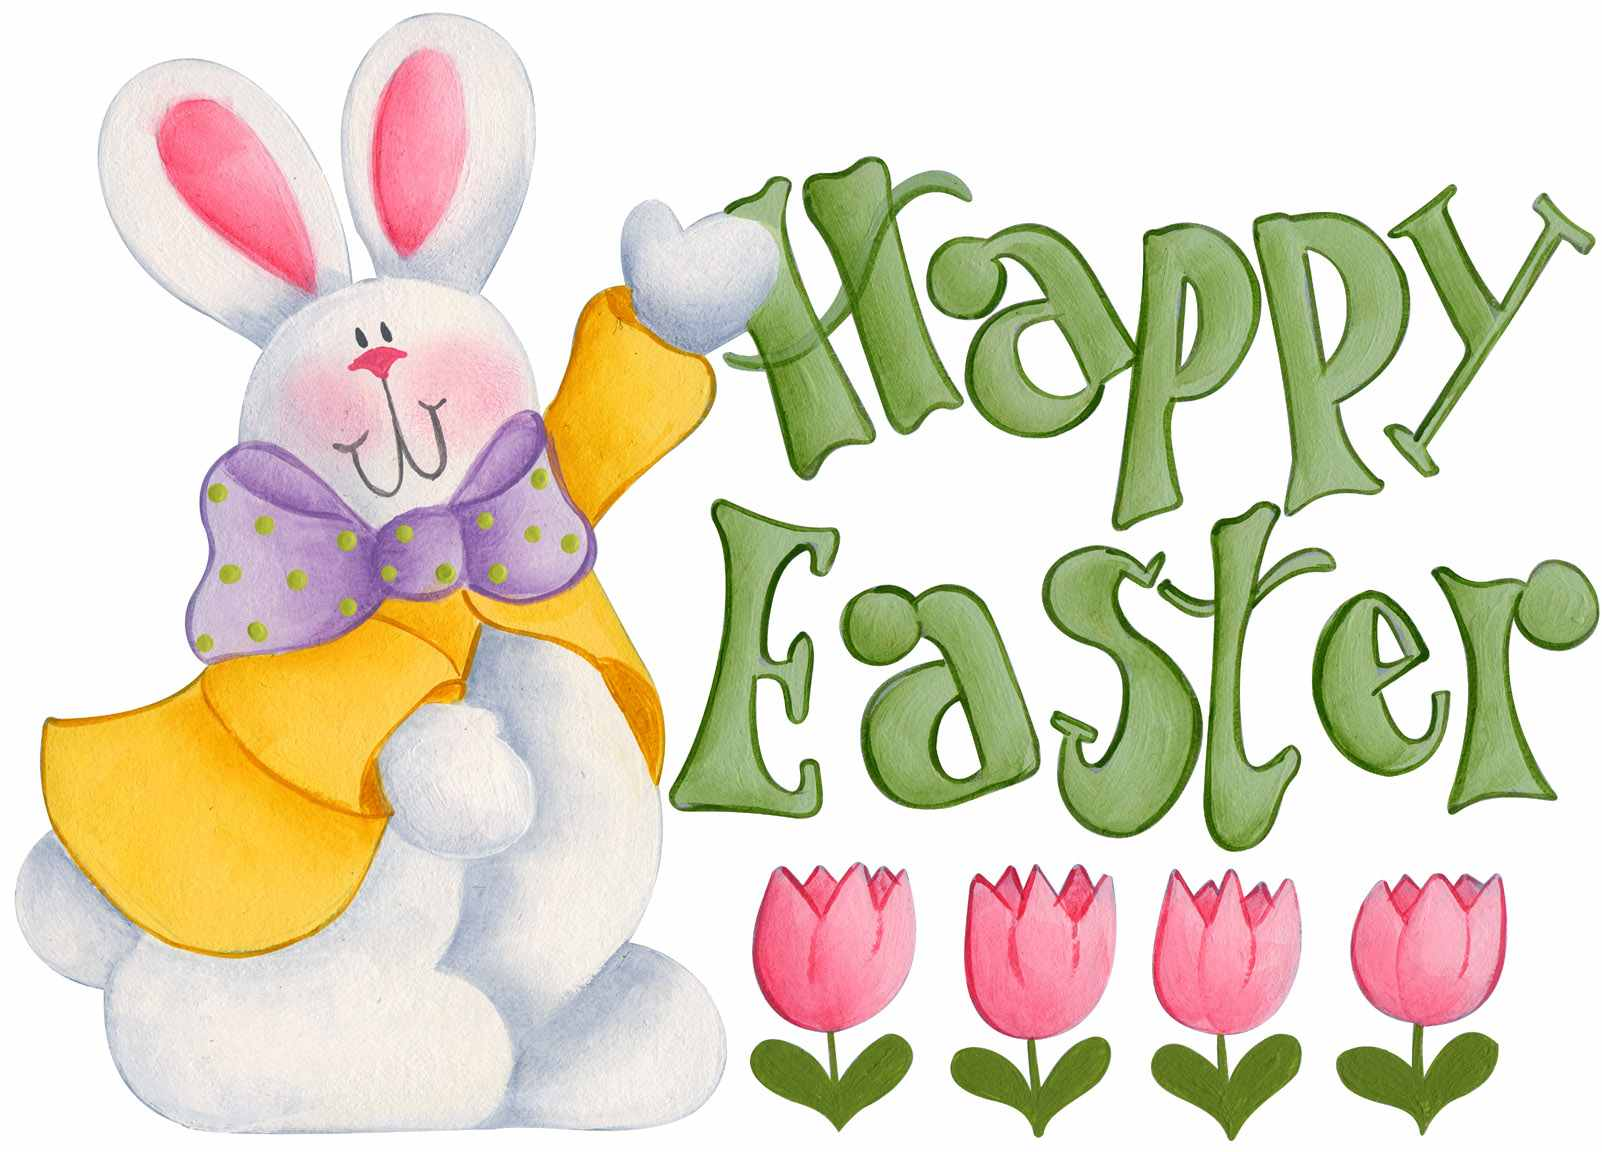 Happy Easter Profile Picture Frame - Toni Tails - Profile Picture ...